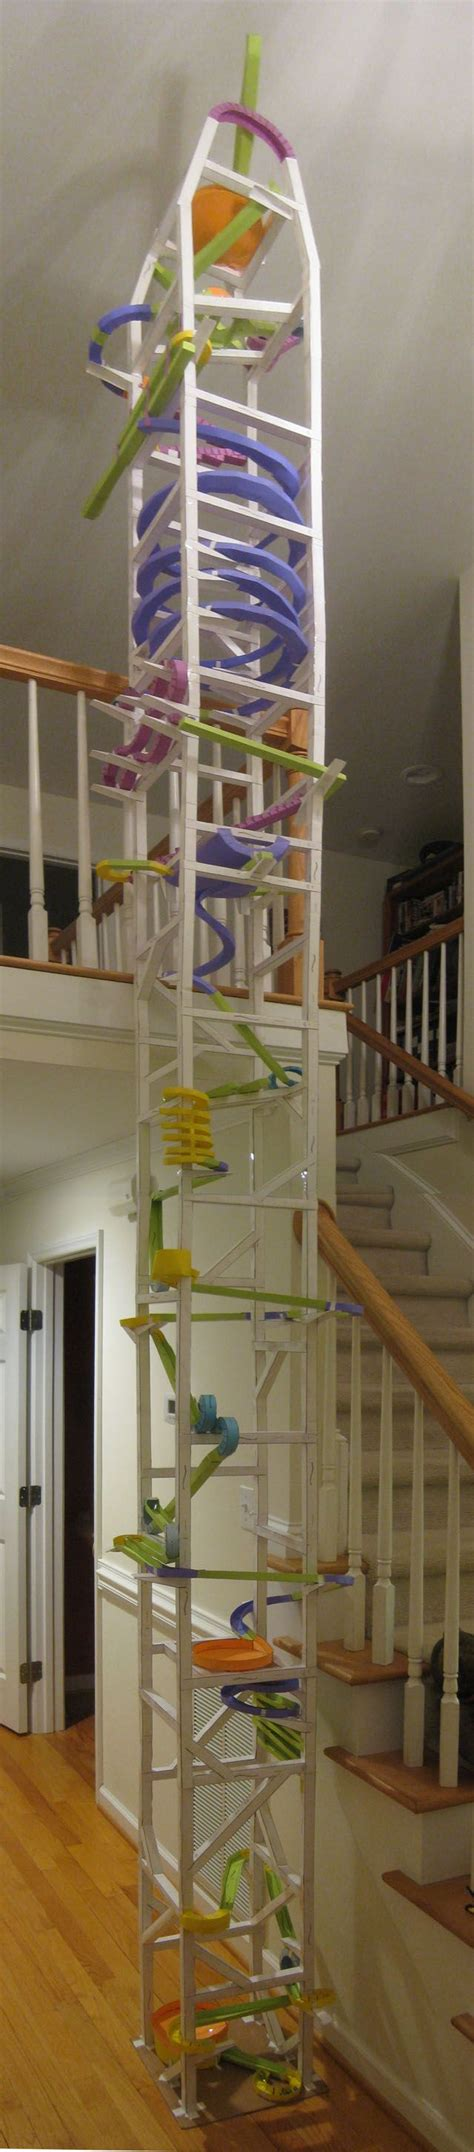 printable paper roller coaster 17 best images about roller coaster ideas on pinterest